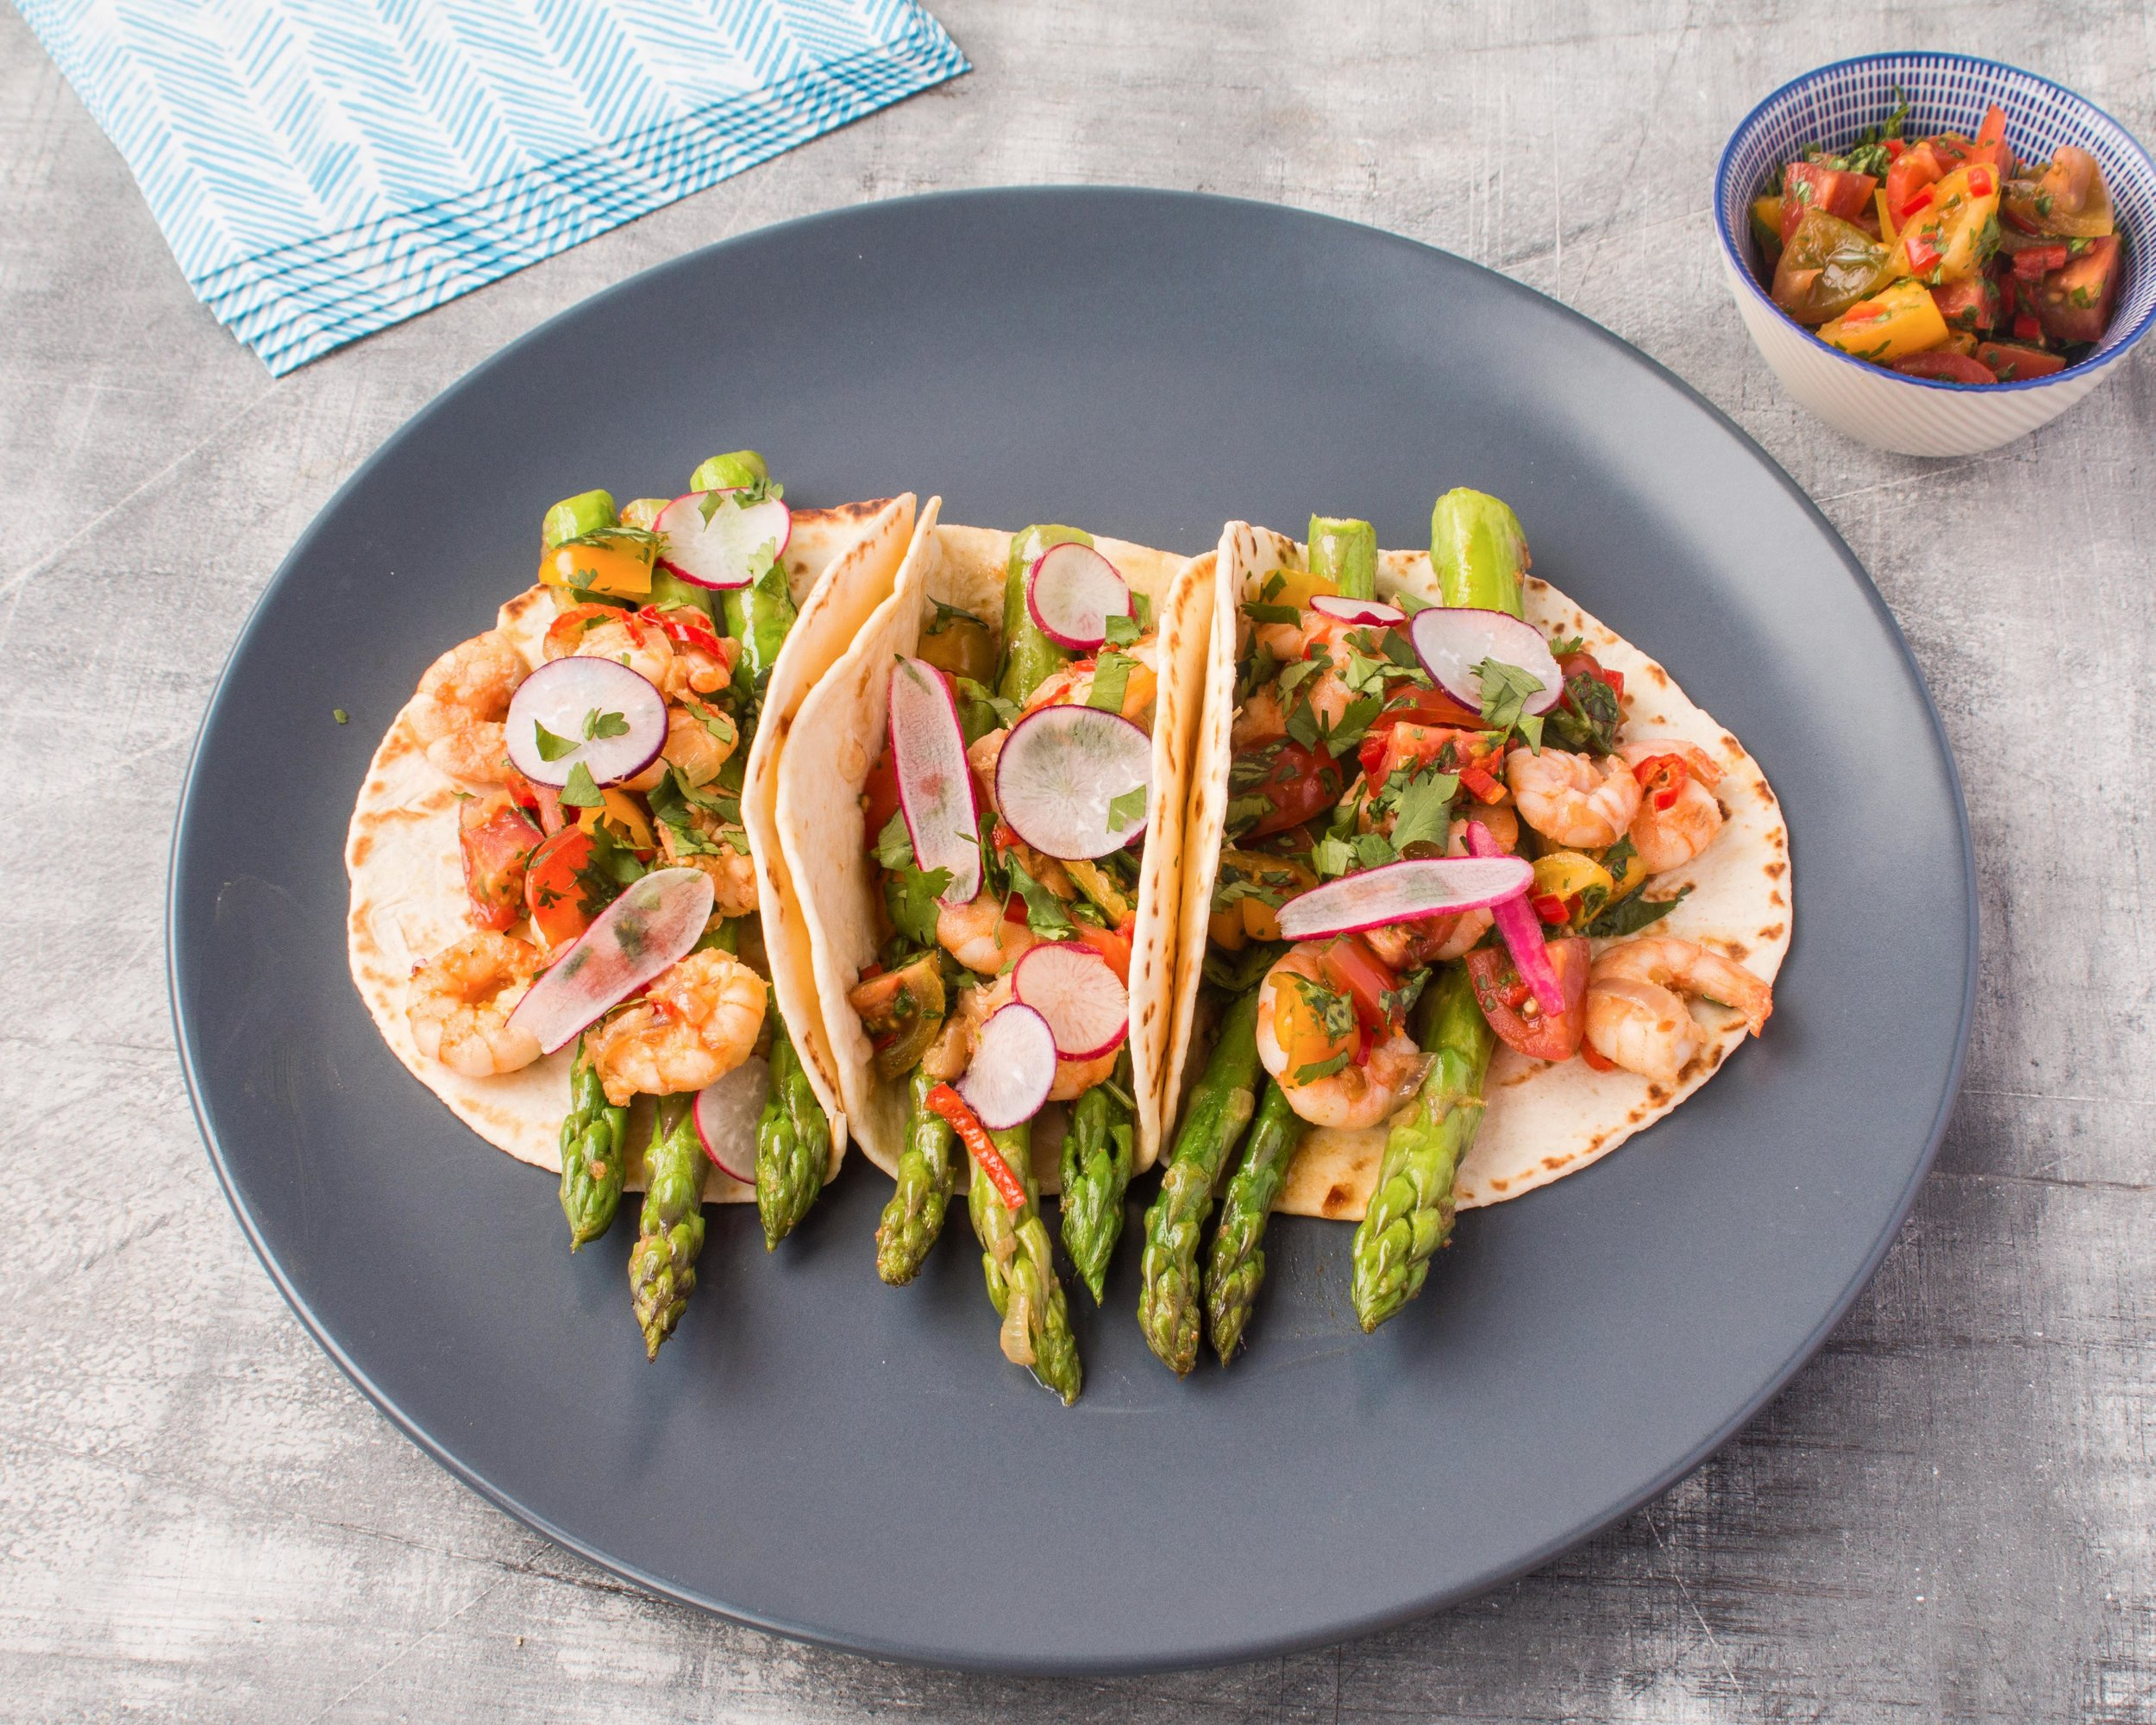 British asparagus and prawn tacos with a tomato salsa.jpg